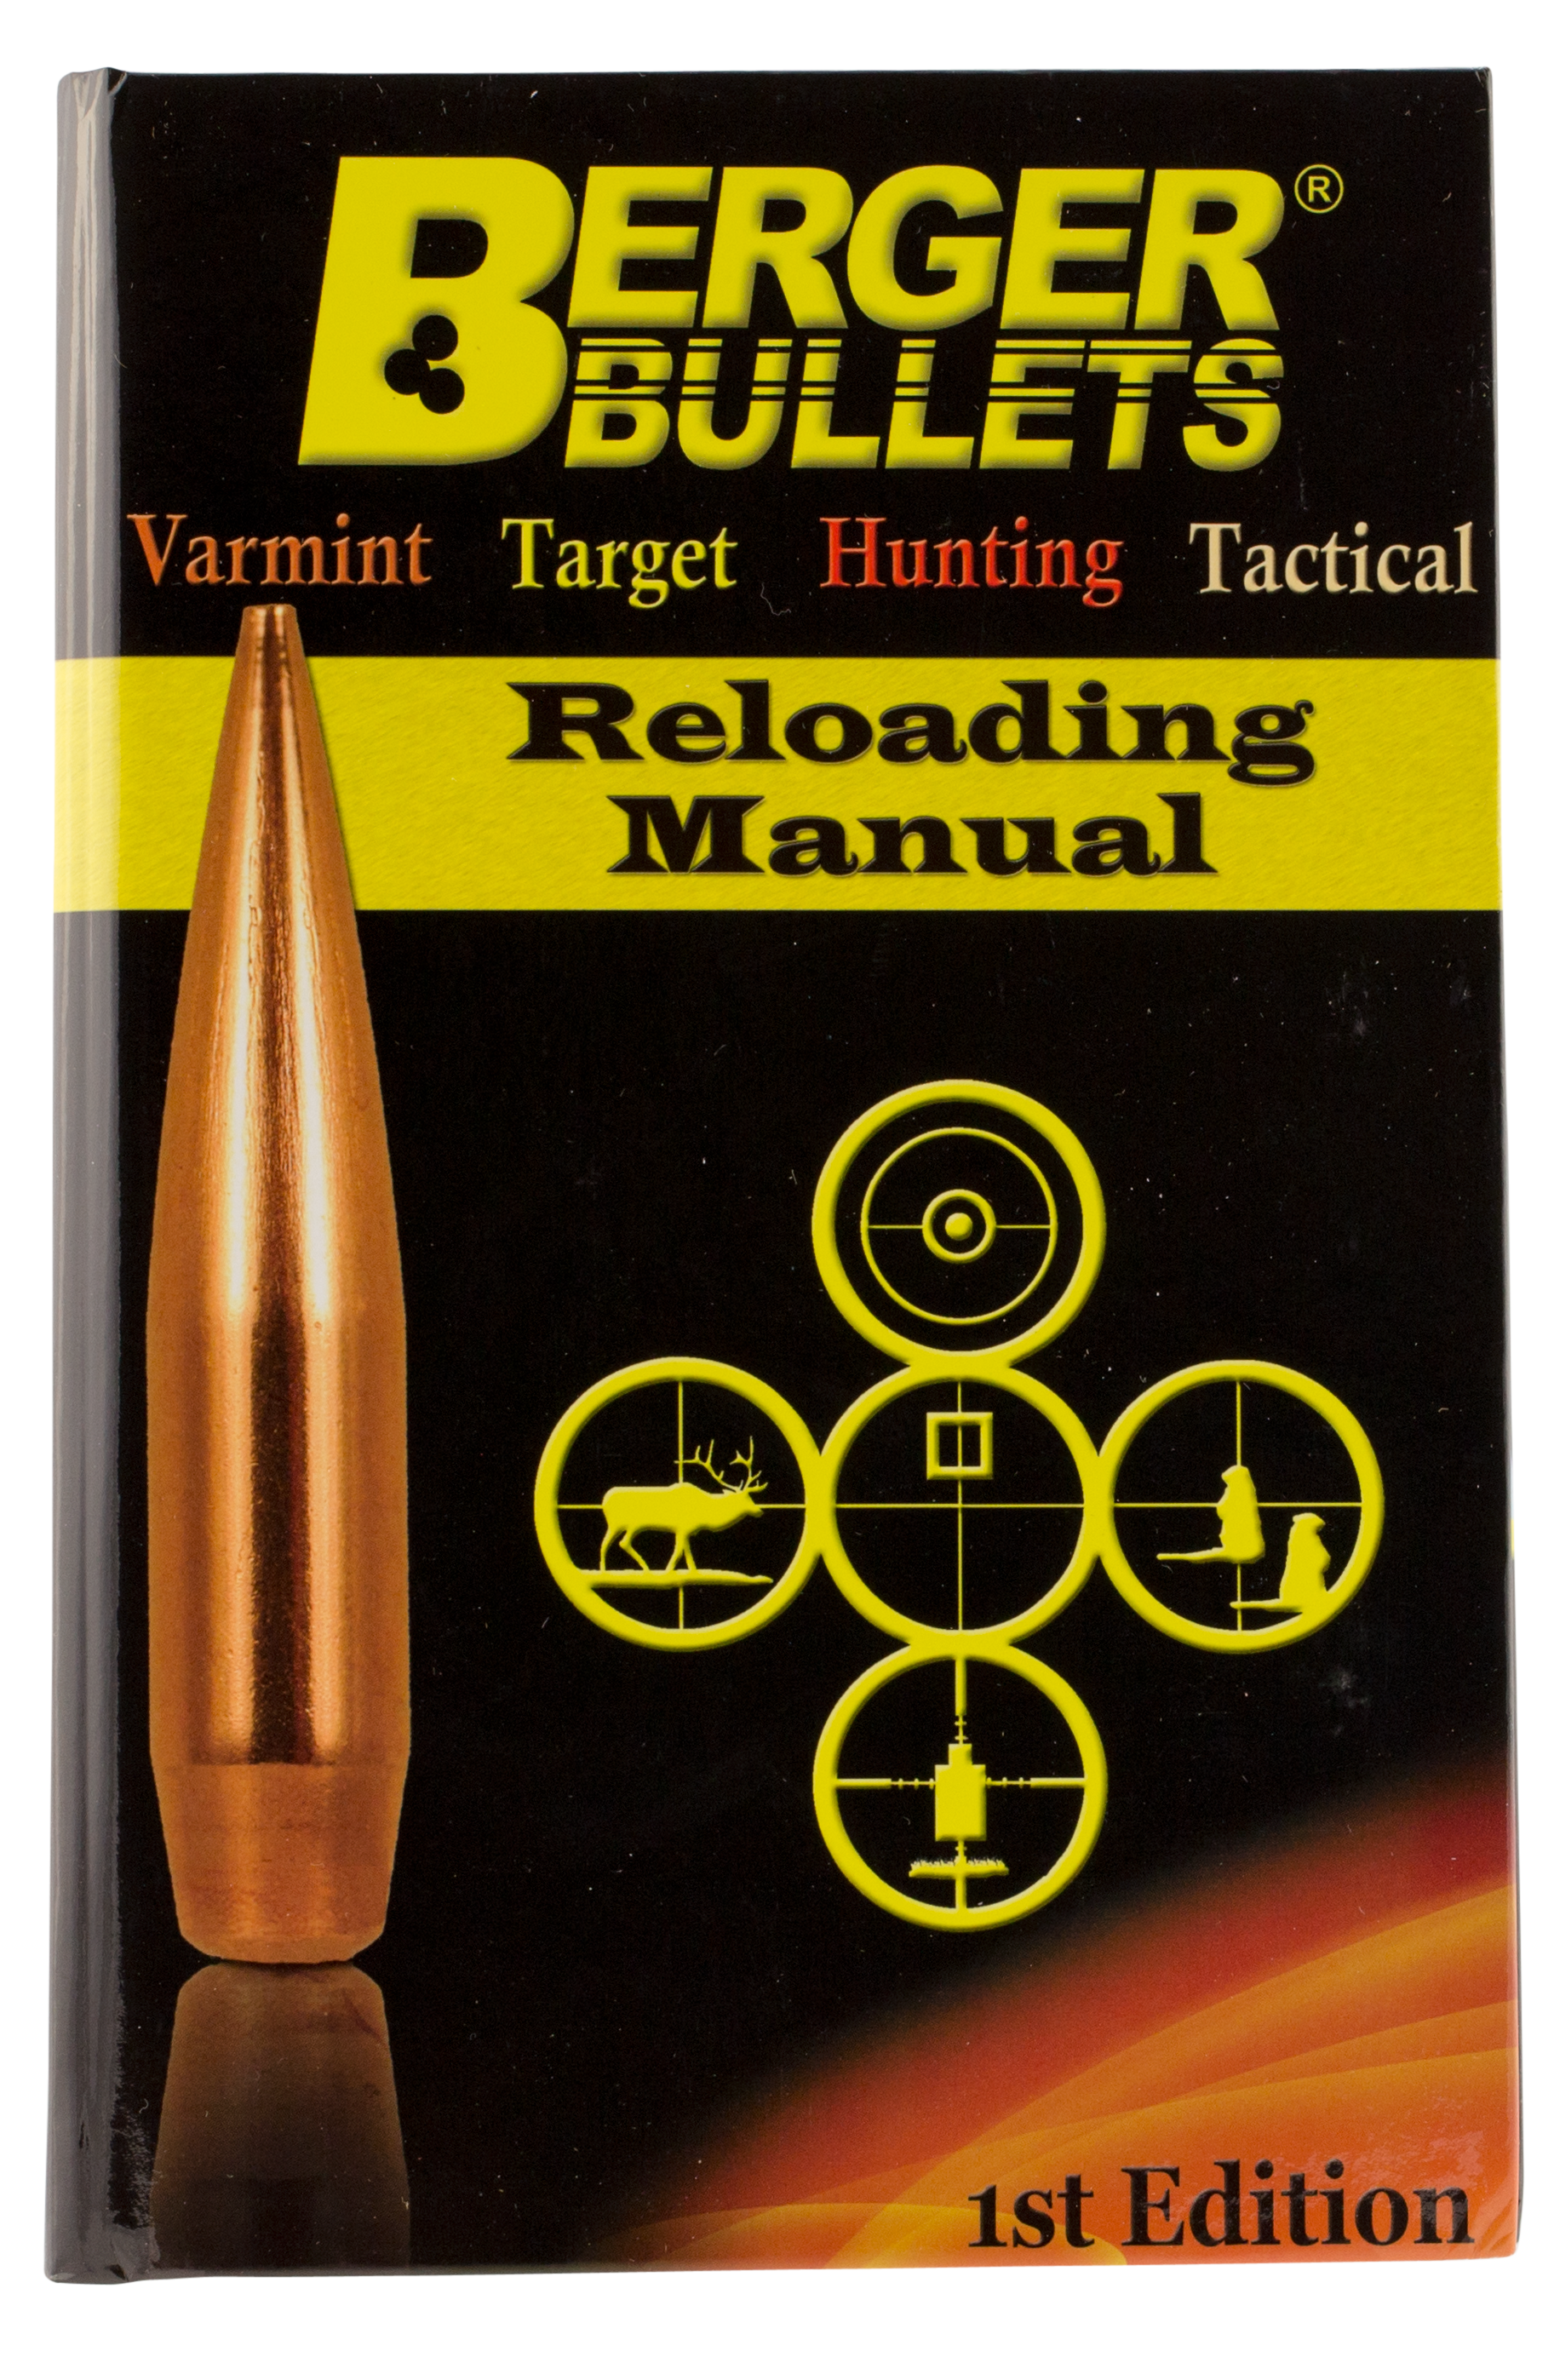 Berger Bullets 11111 Reloading Manual Book 1st Edition